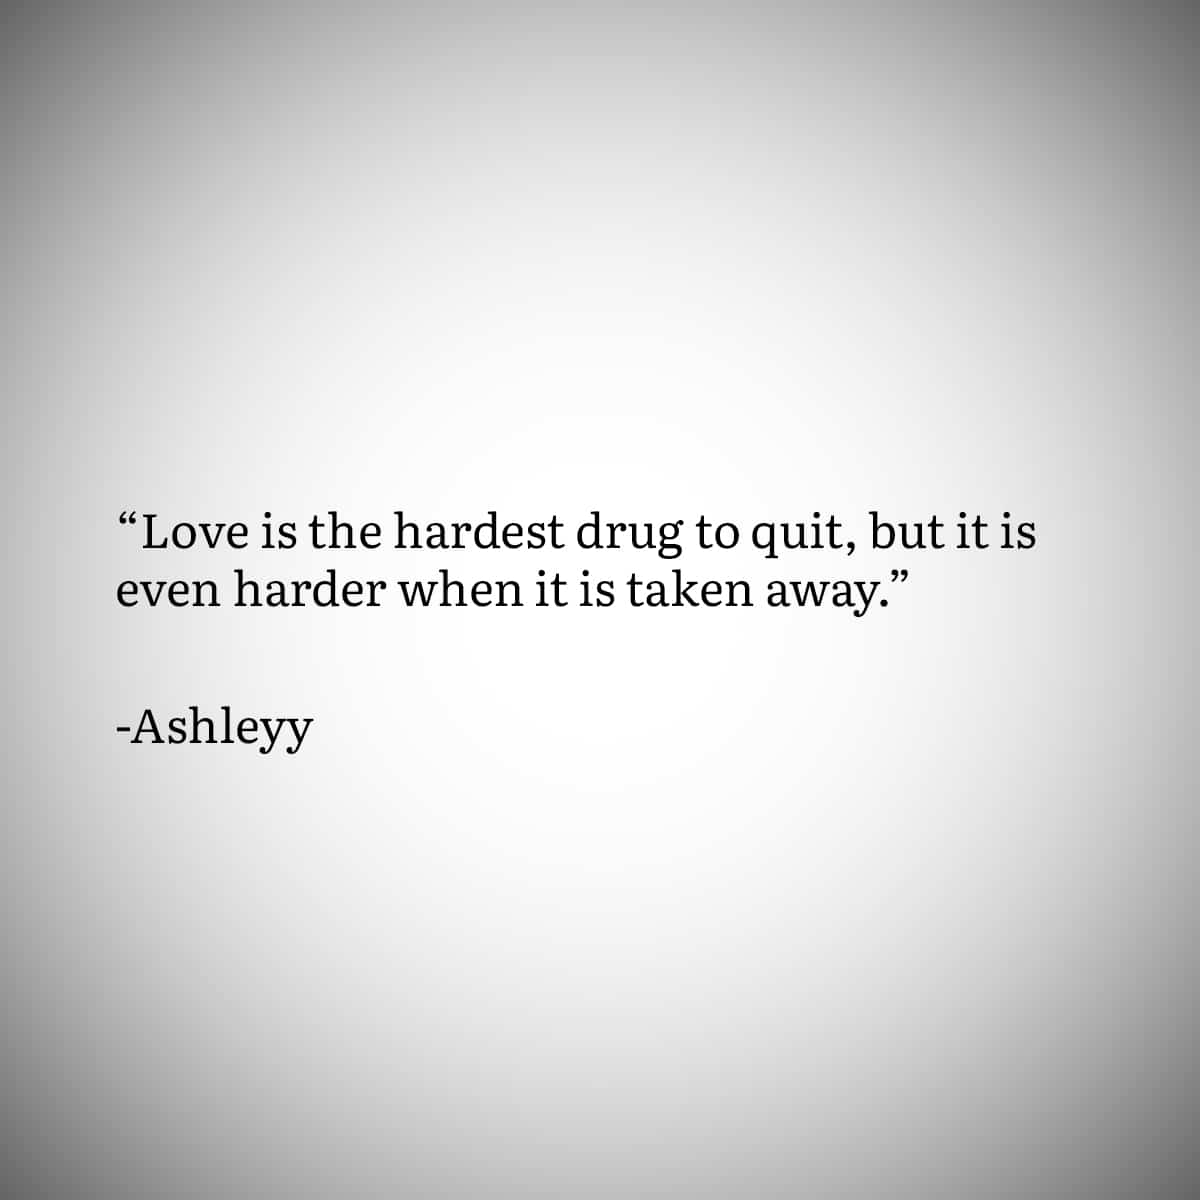 """Broken Heart Quote 6: """"Love is the hardest drug to quit, but it is even harder when it is taken away."""" by Ashleyy"""